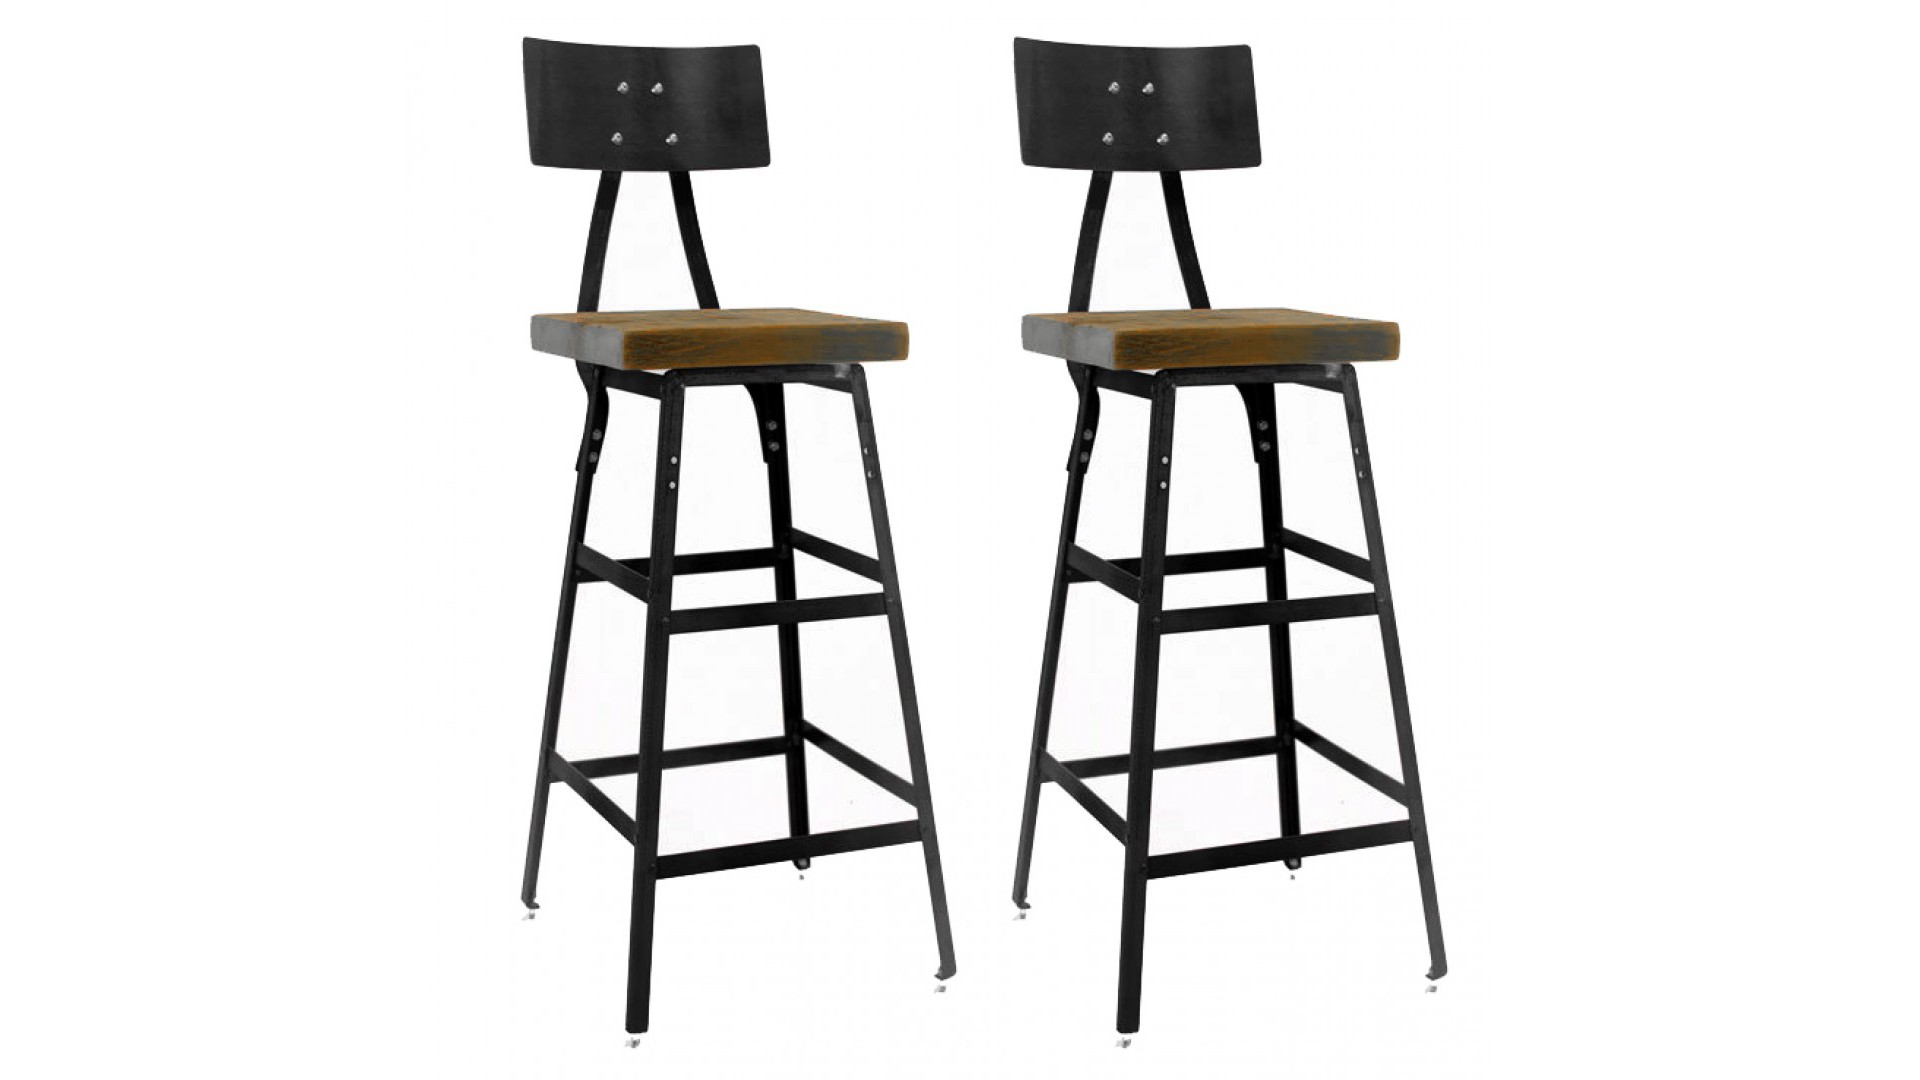 Vintage Industrial Bar Stool (Set of 2)